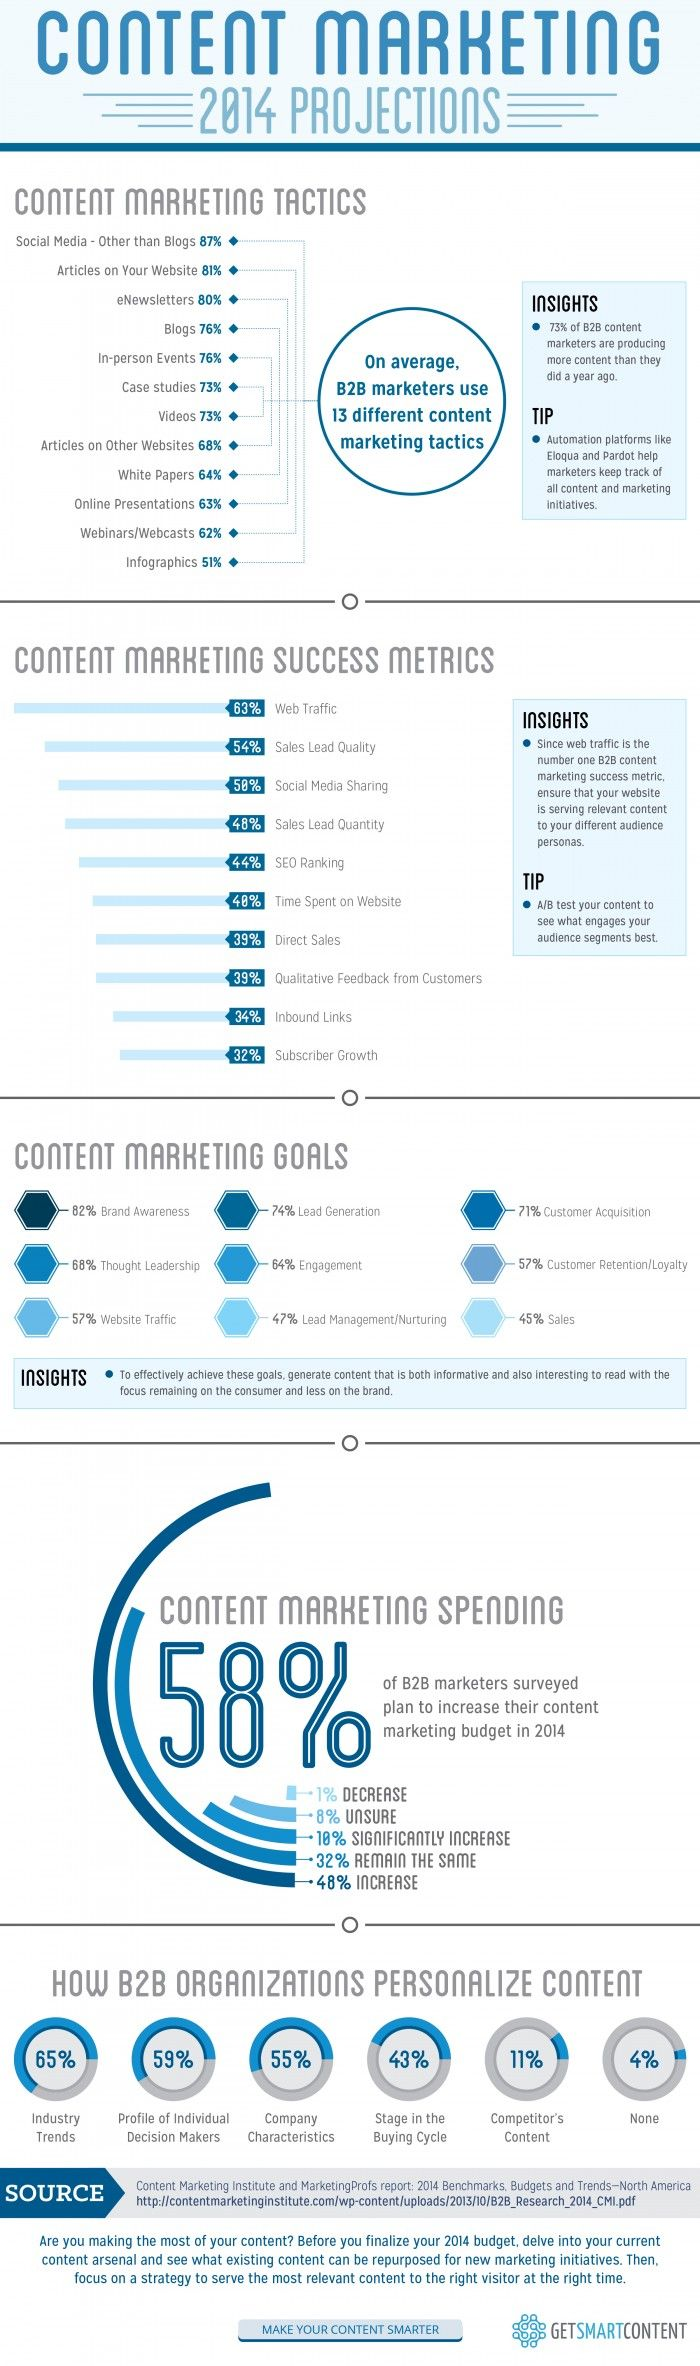 Content Marketing 2014 Projections [#INFOGRAPHIC] #contentmarketing